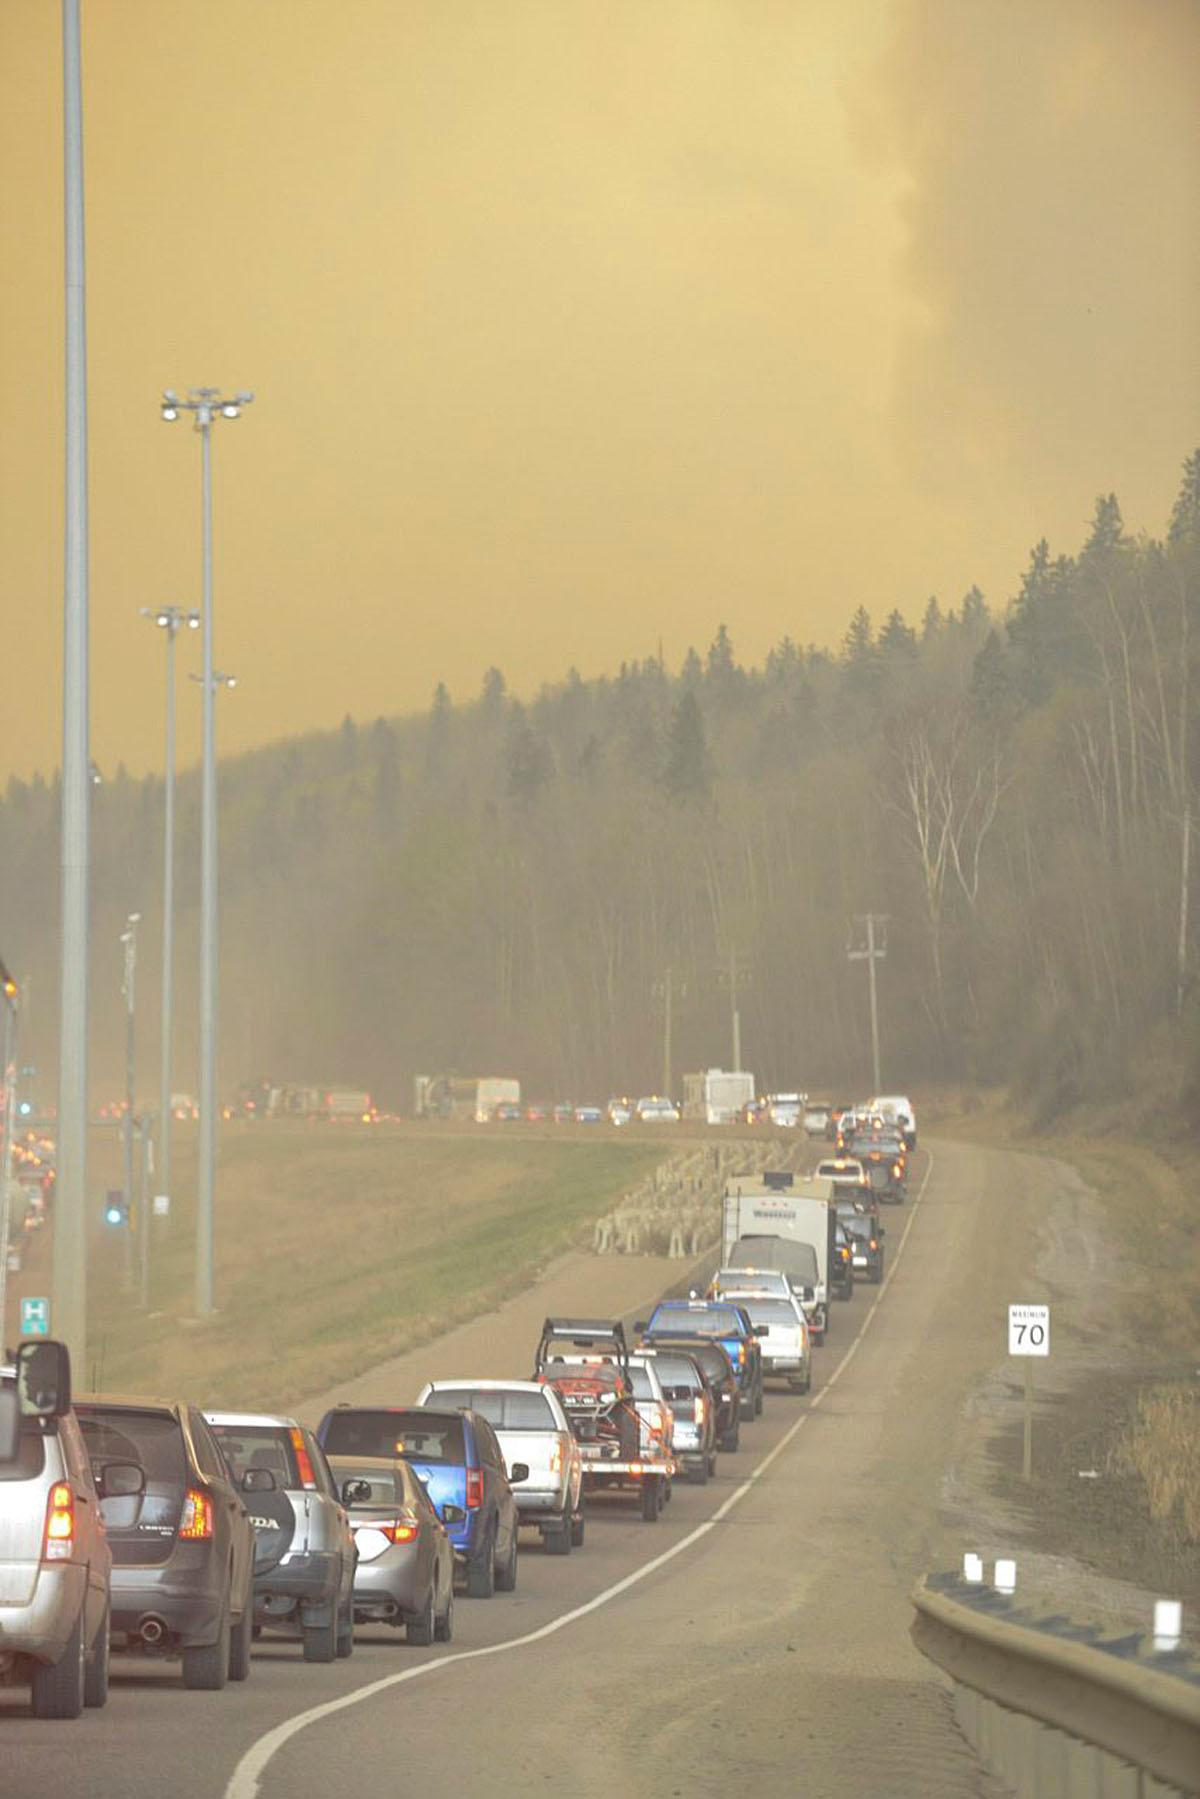 Smoke fills the air as people drive on a road in Fort McMurray, Alberta, Tuesday, May 3, 2016. At least half of a northern Alberta city was ordered evacuated Tuesday as a wildfire whipped by winds engulfed homes and sent ash raining down on residents. (Greg Halinda/The Canadian Press via AP) MANDATORY CREDIT